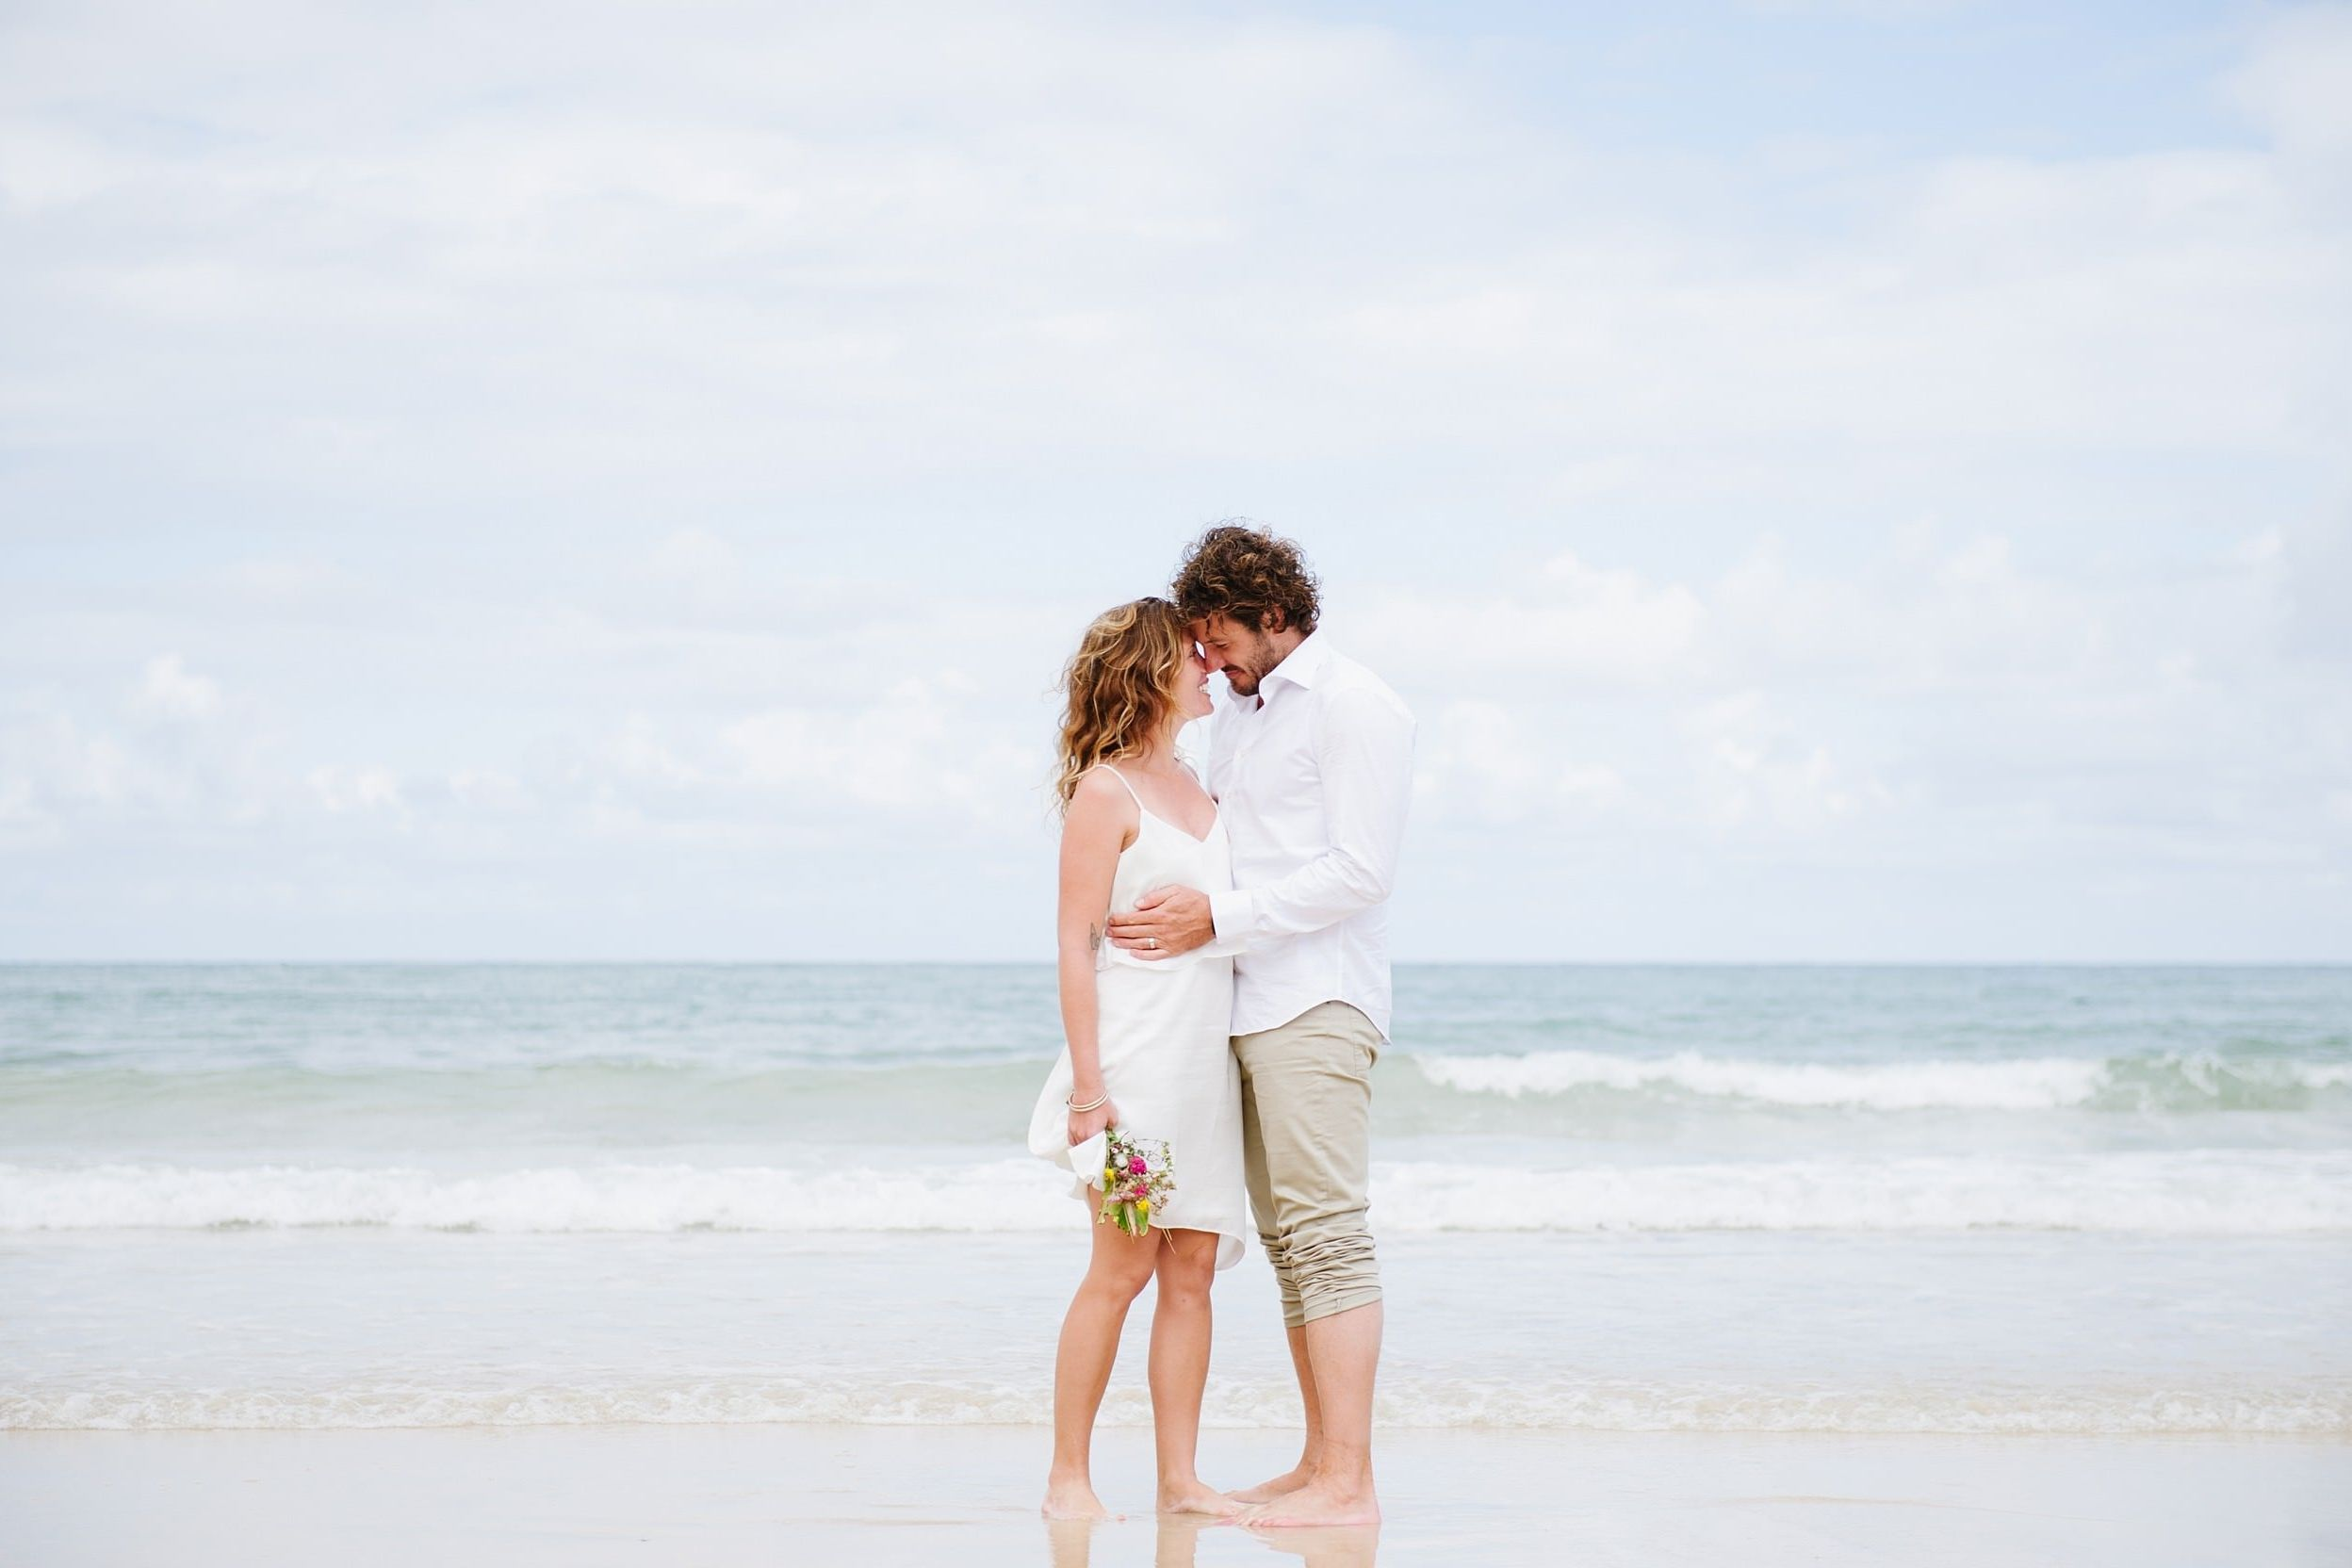 Elopement weddings in Cornwall